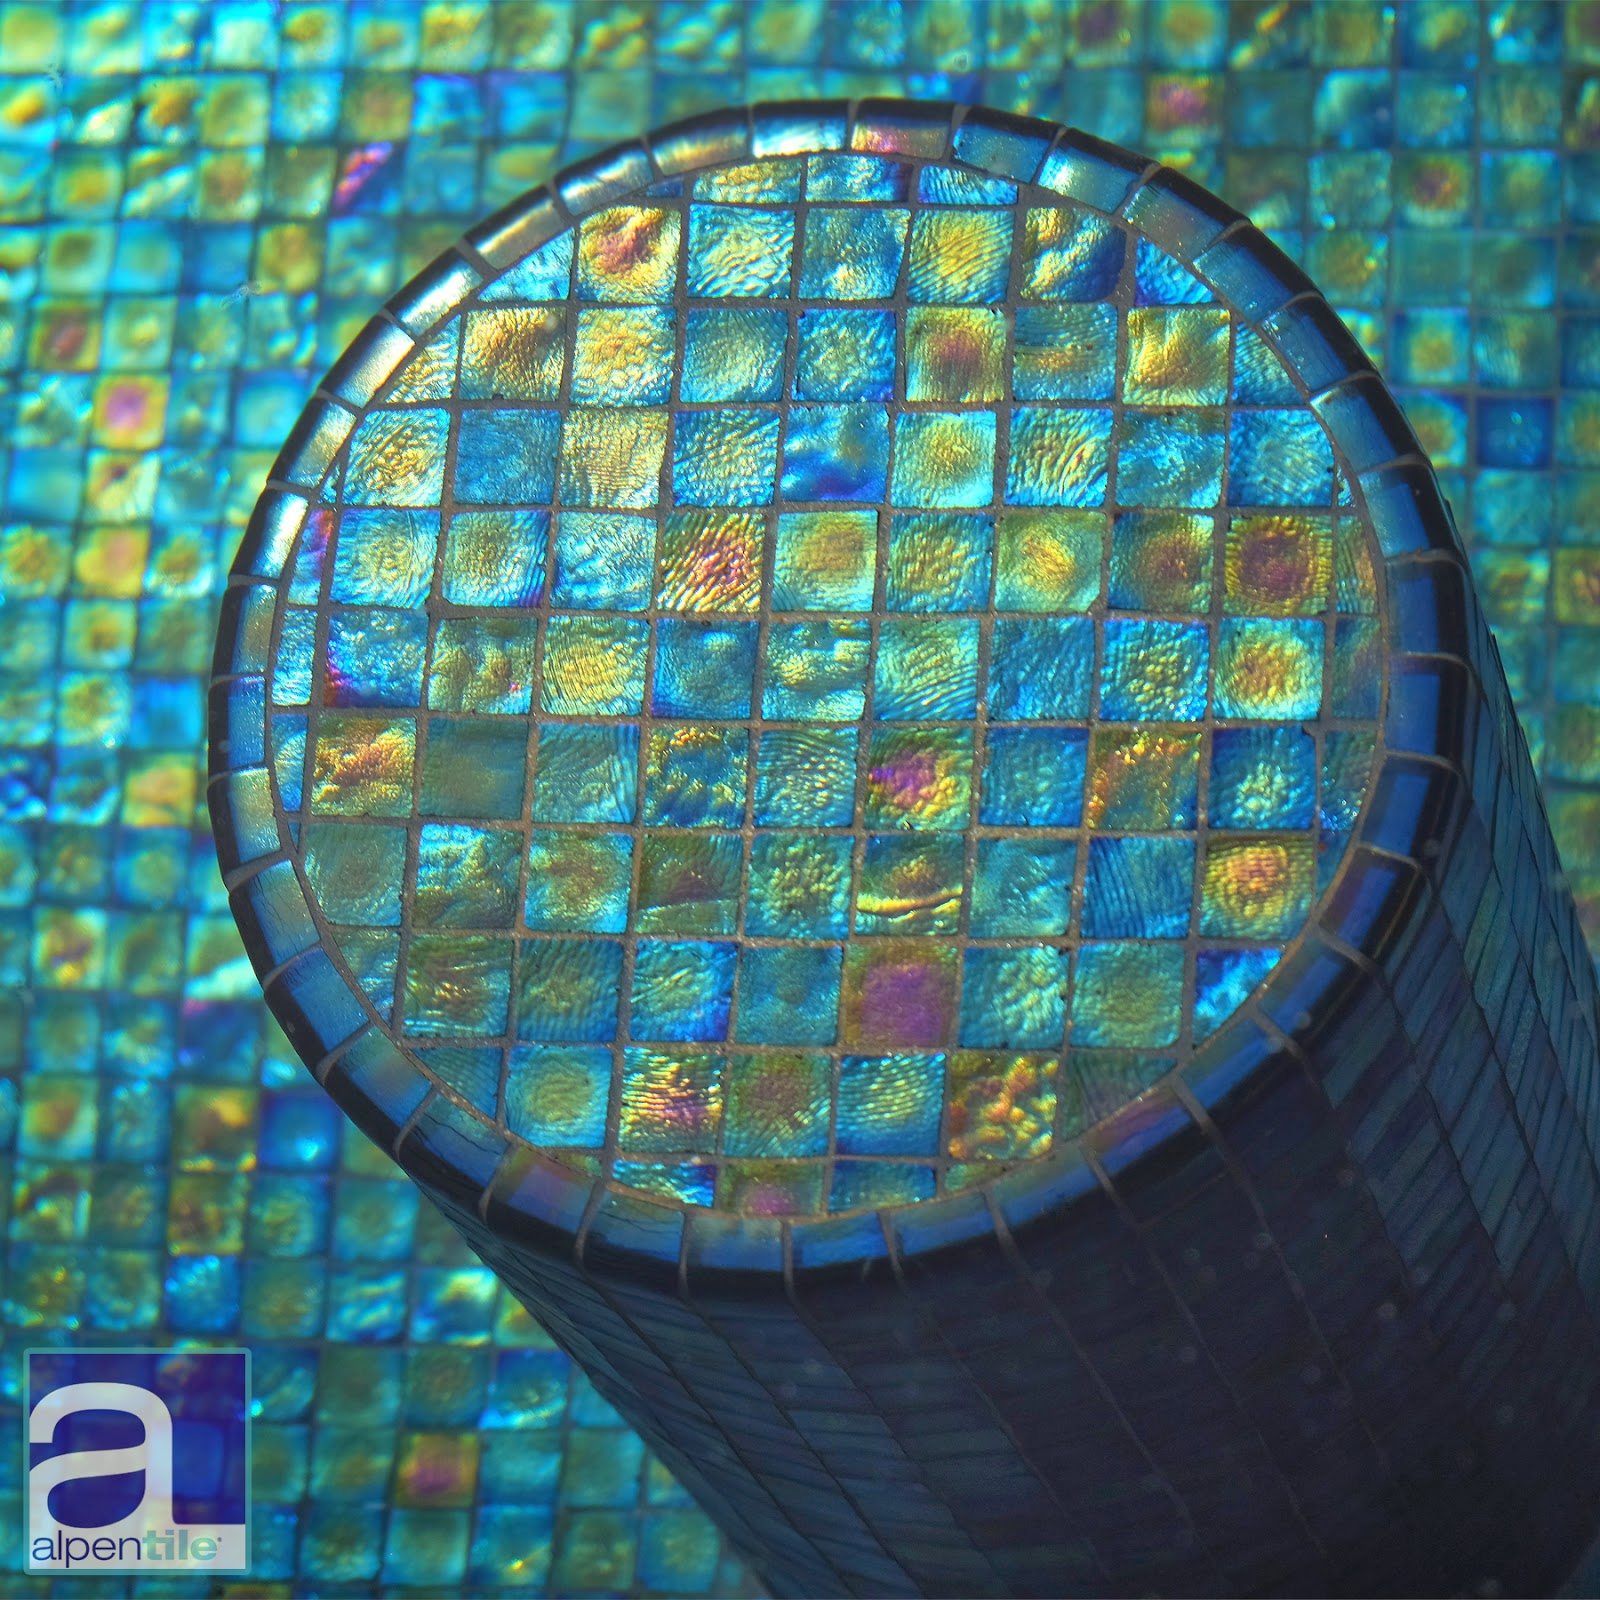 Alpentile Glass Tile Swimming Pools This Glass Mosaic Swimming Pool Has All The Right Details